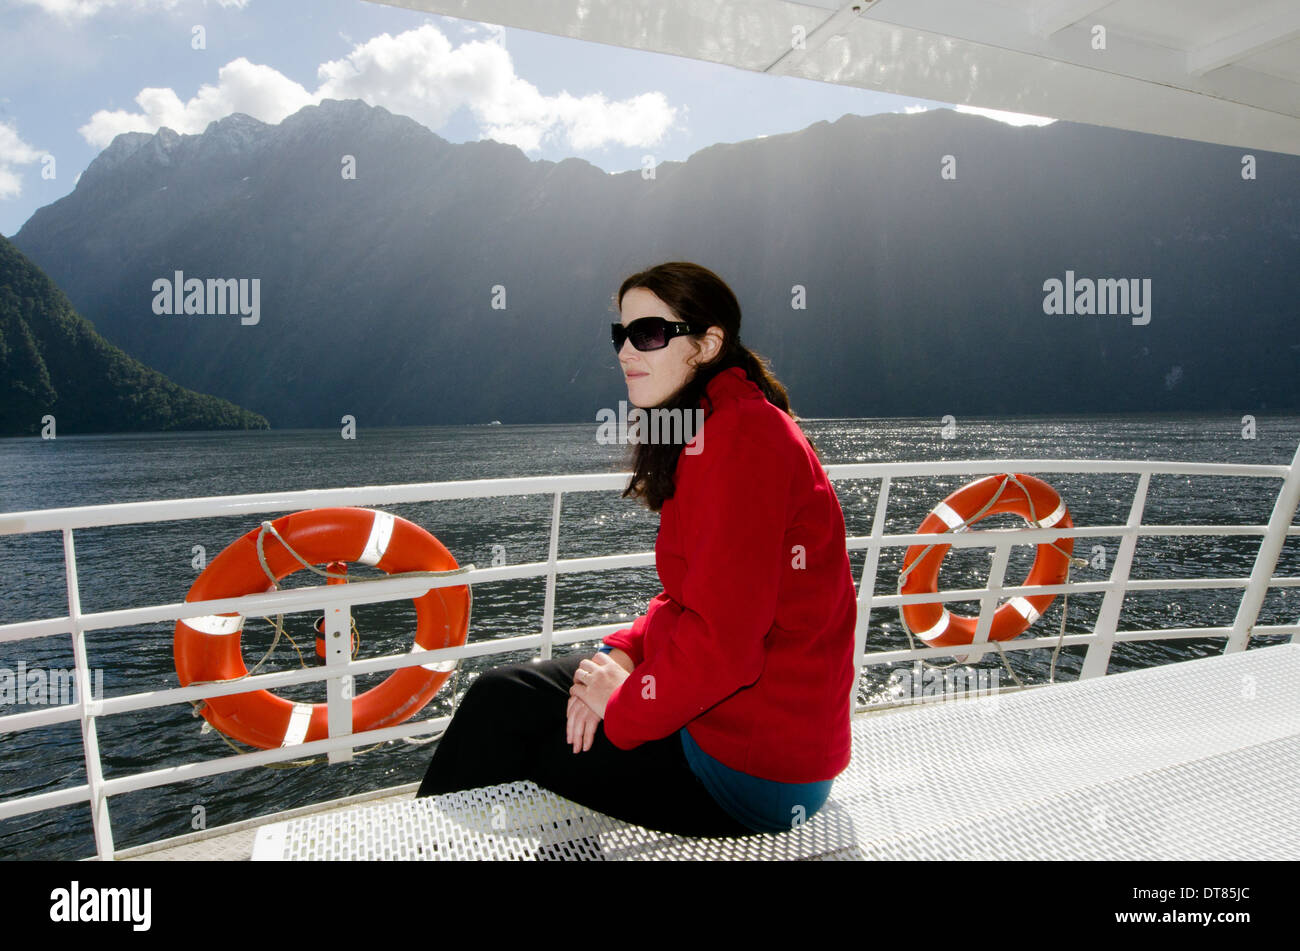 Woman sail on a cruise boat in milford sound, Fiordland, New Zealand. - Stock Image